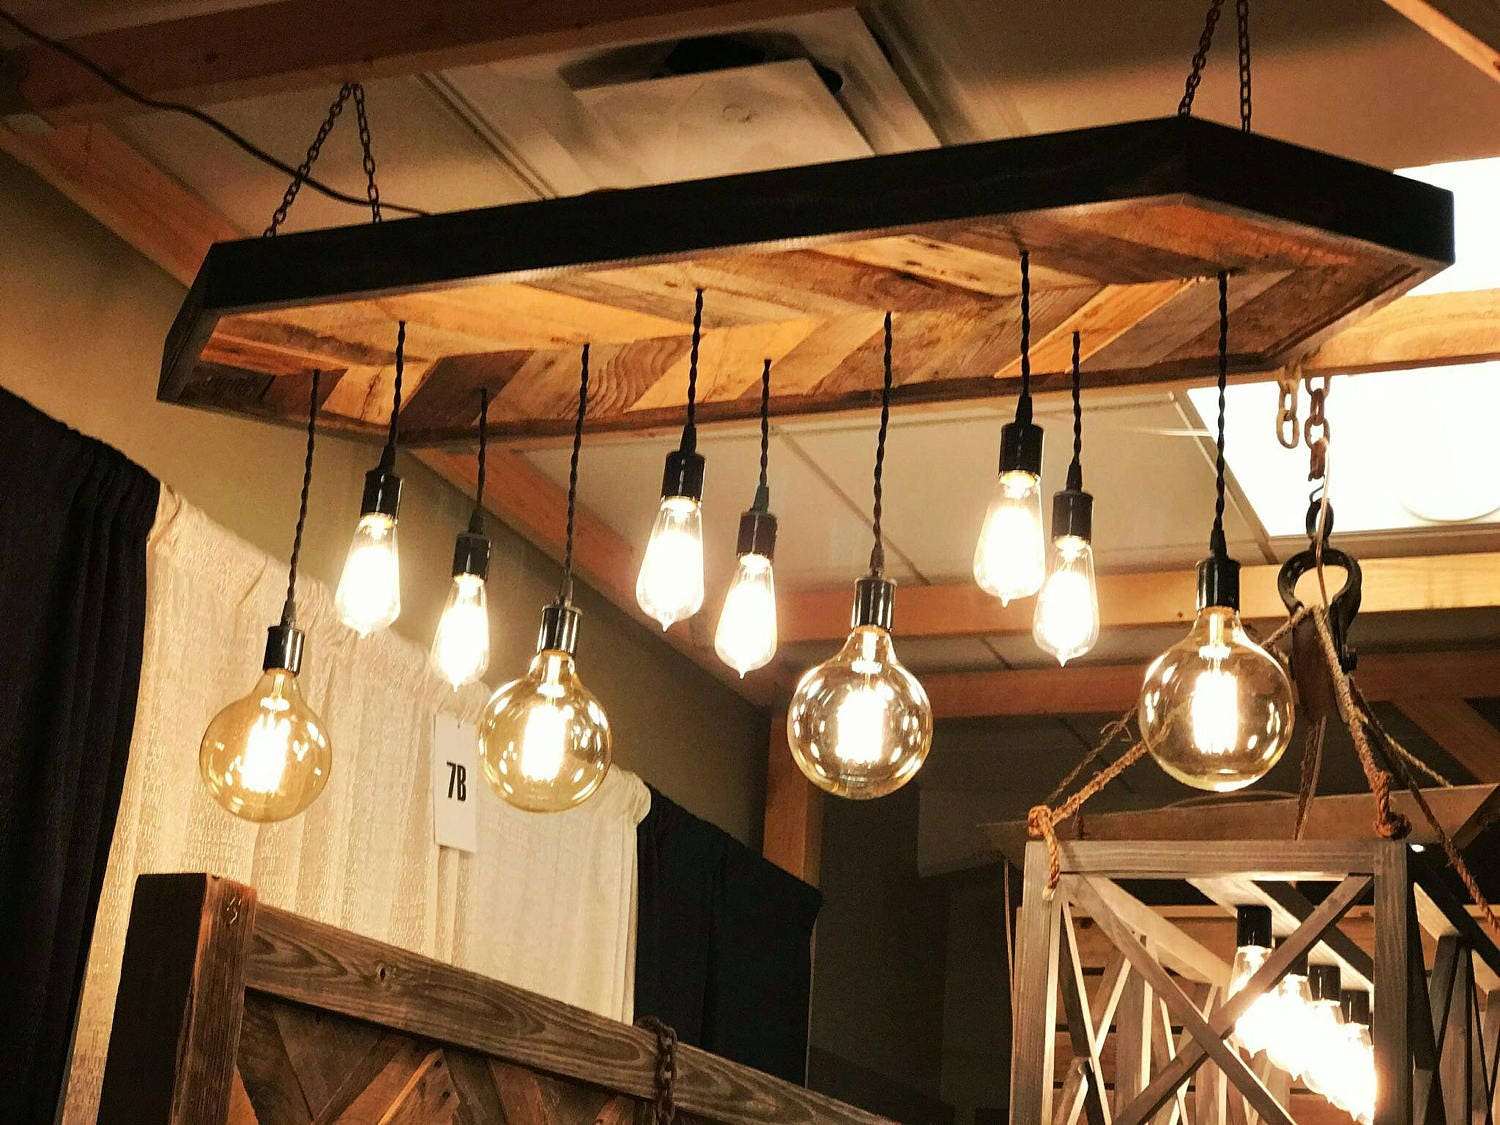 chevron pendant light chandelier - reclaimed wood canopy and